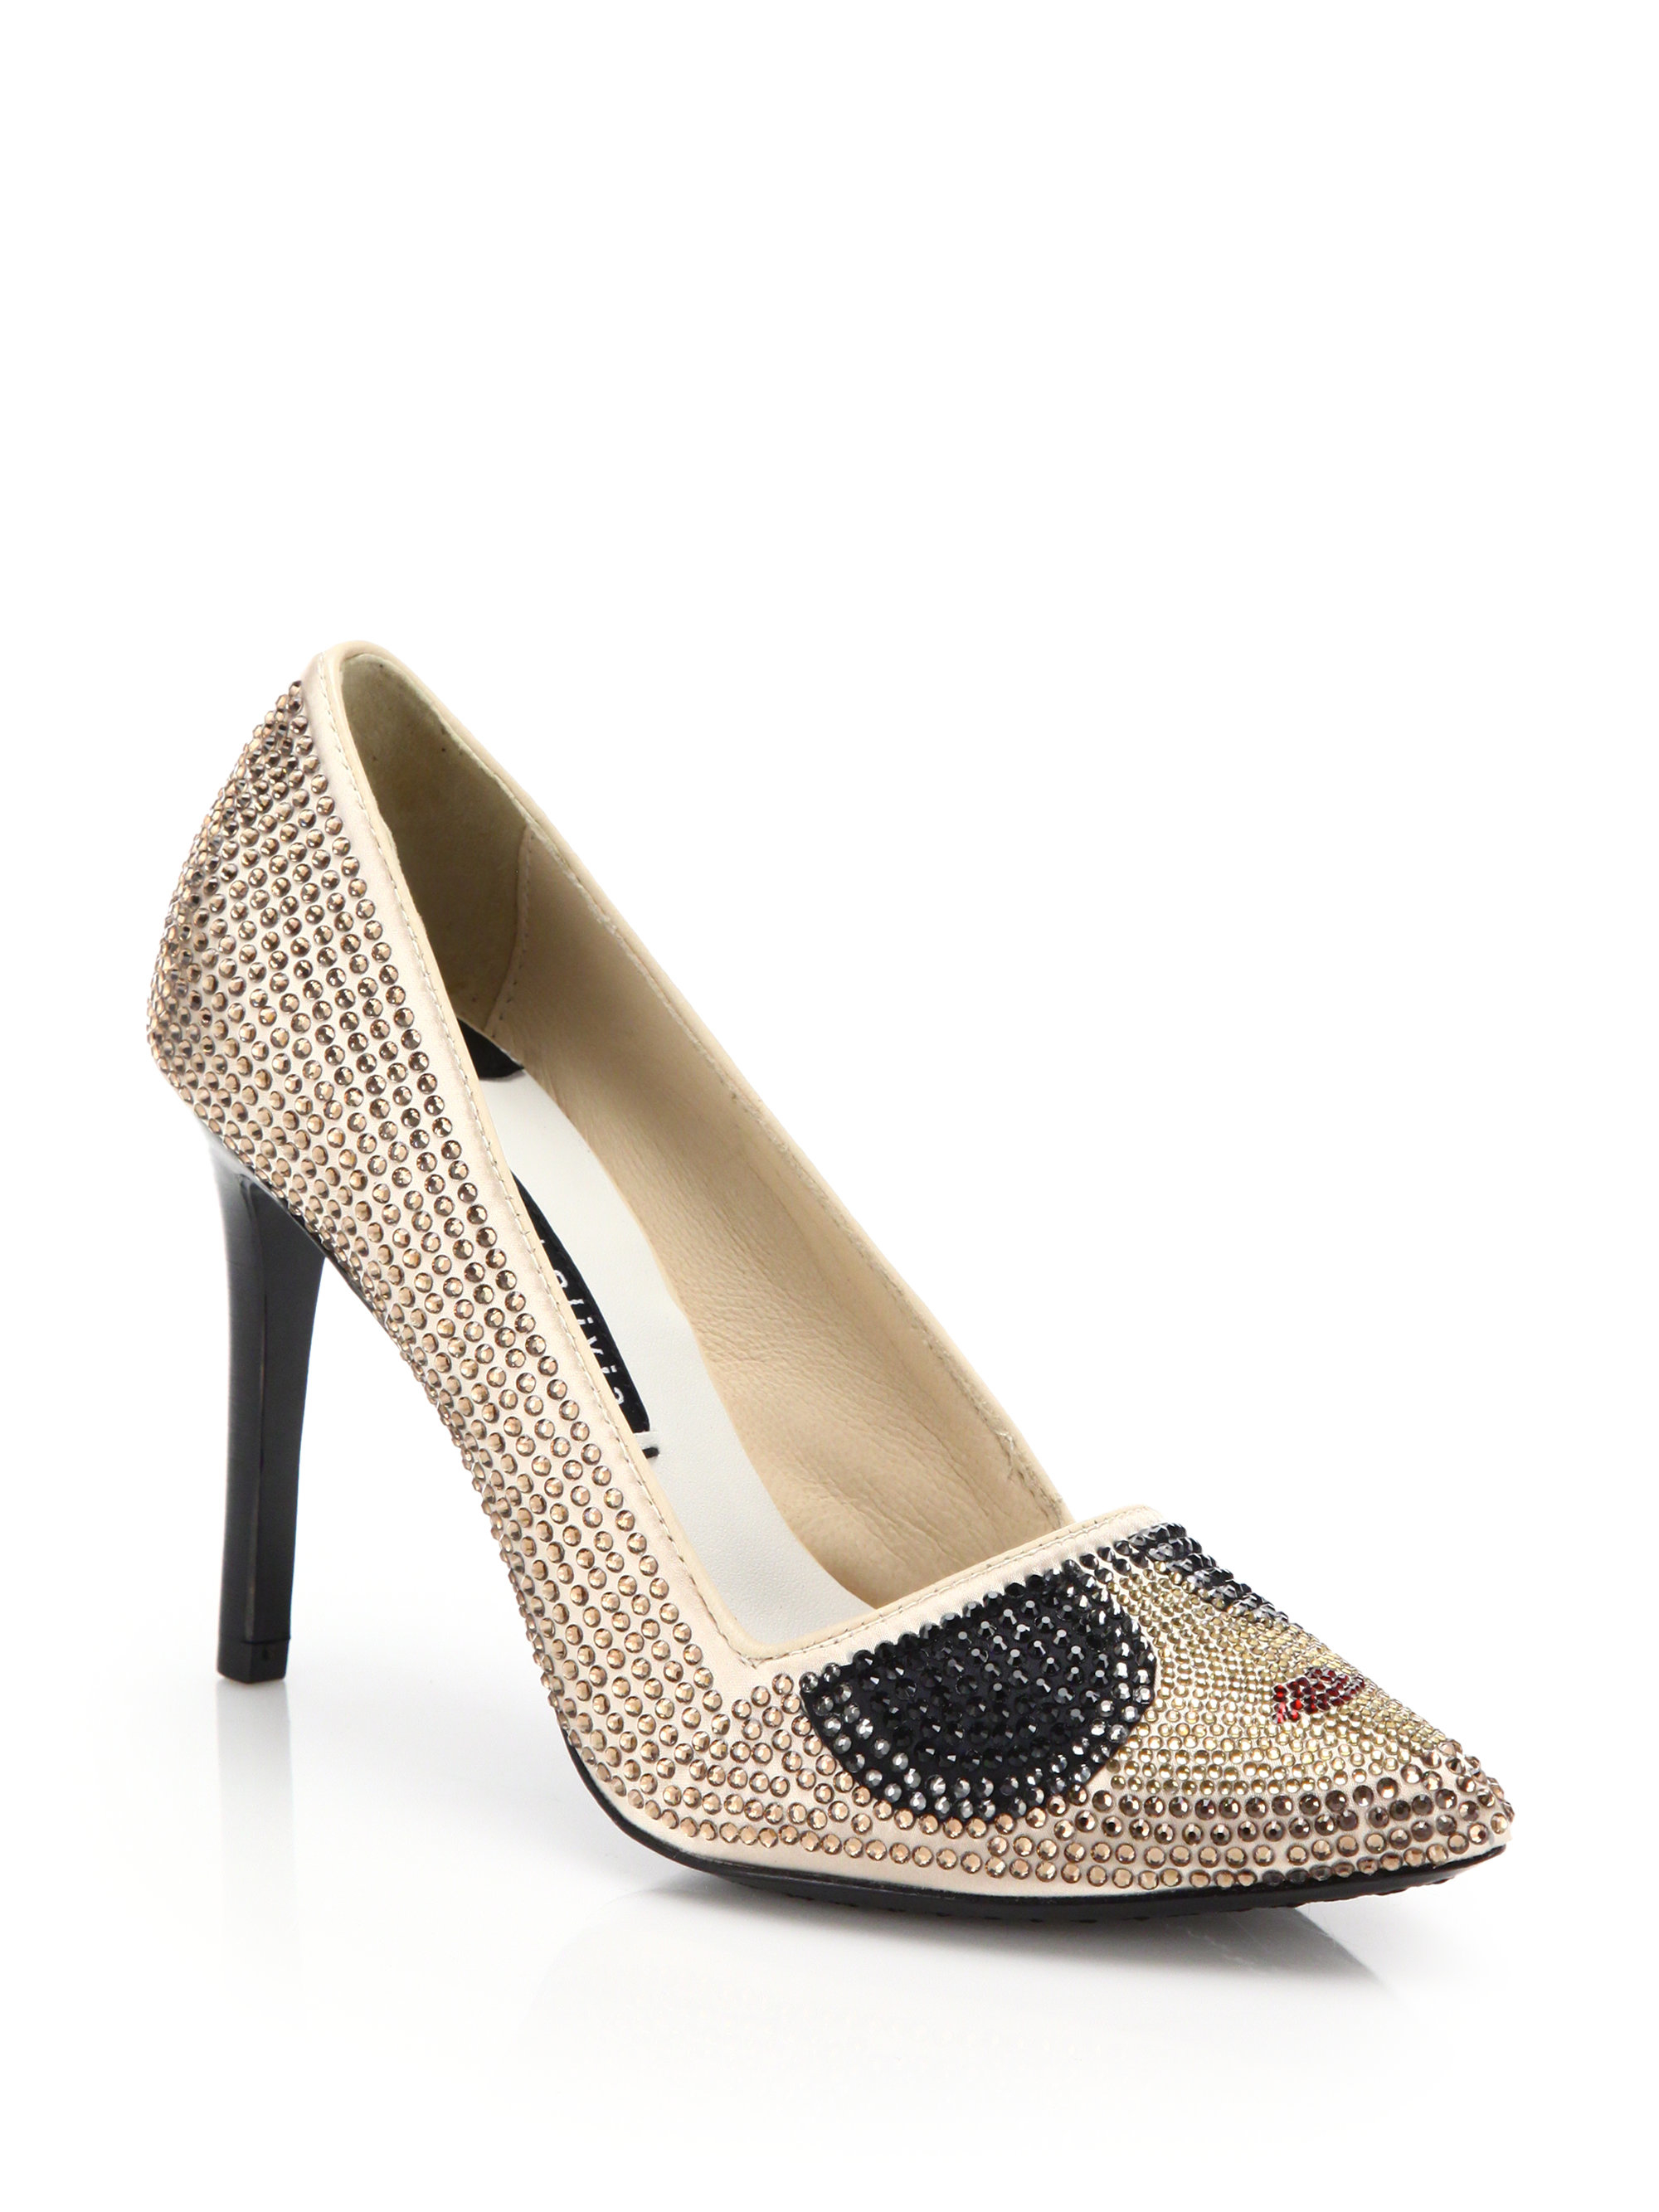 quality free shipping low price Alice + Olivia Embellished Pointed-Toe Pumps fake for sale cheap cheap online 8M8wj